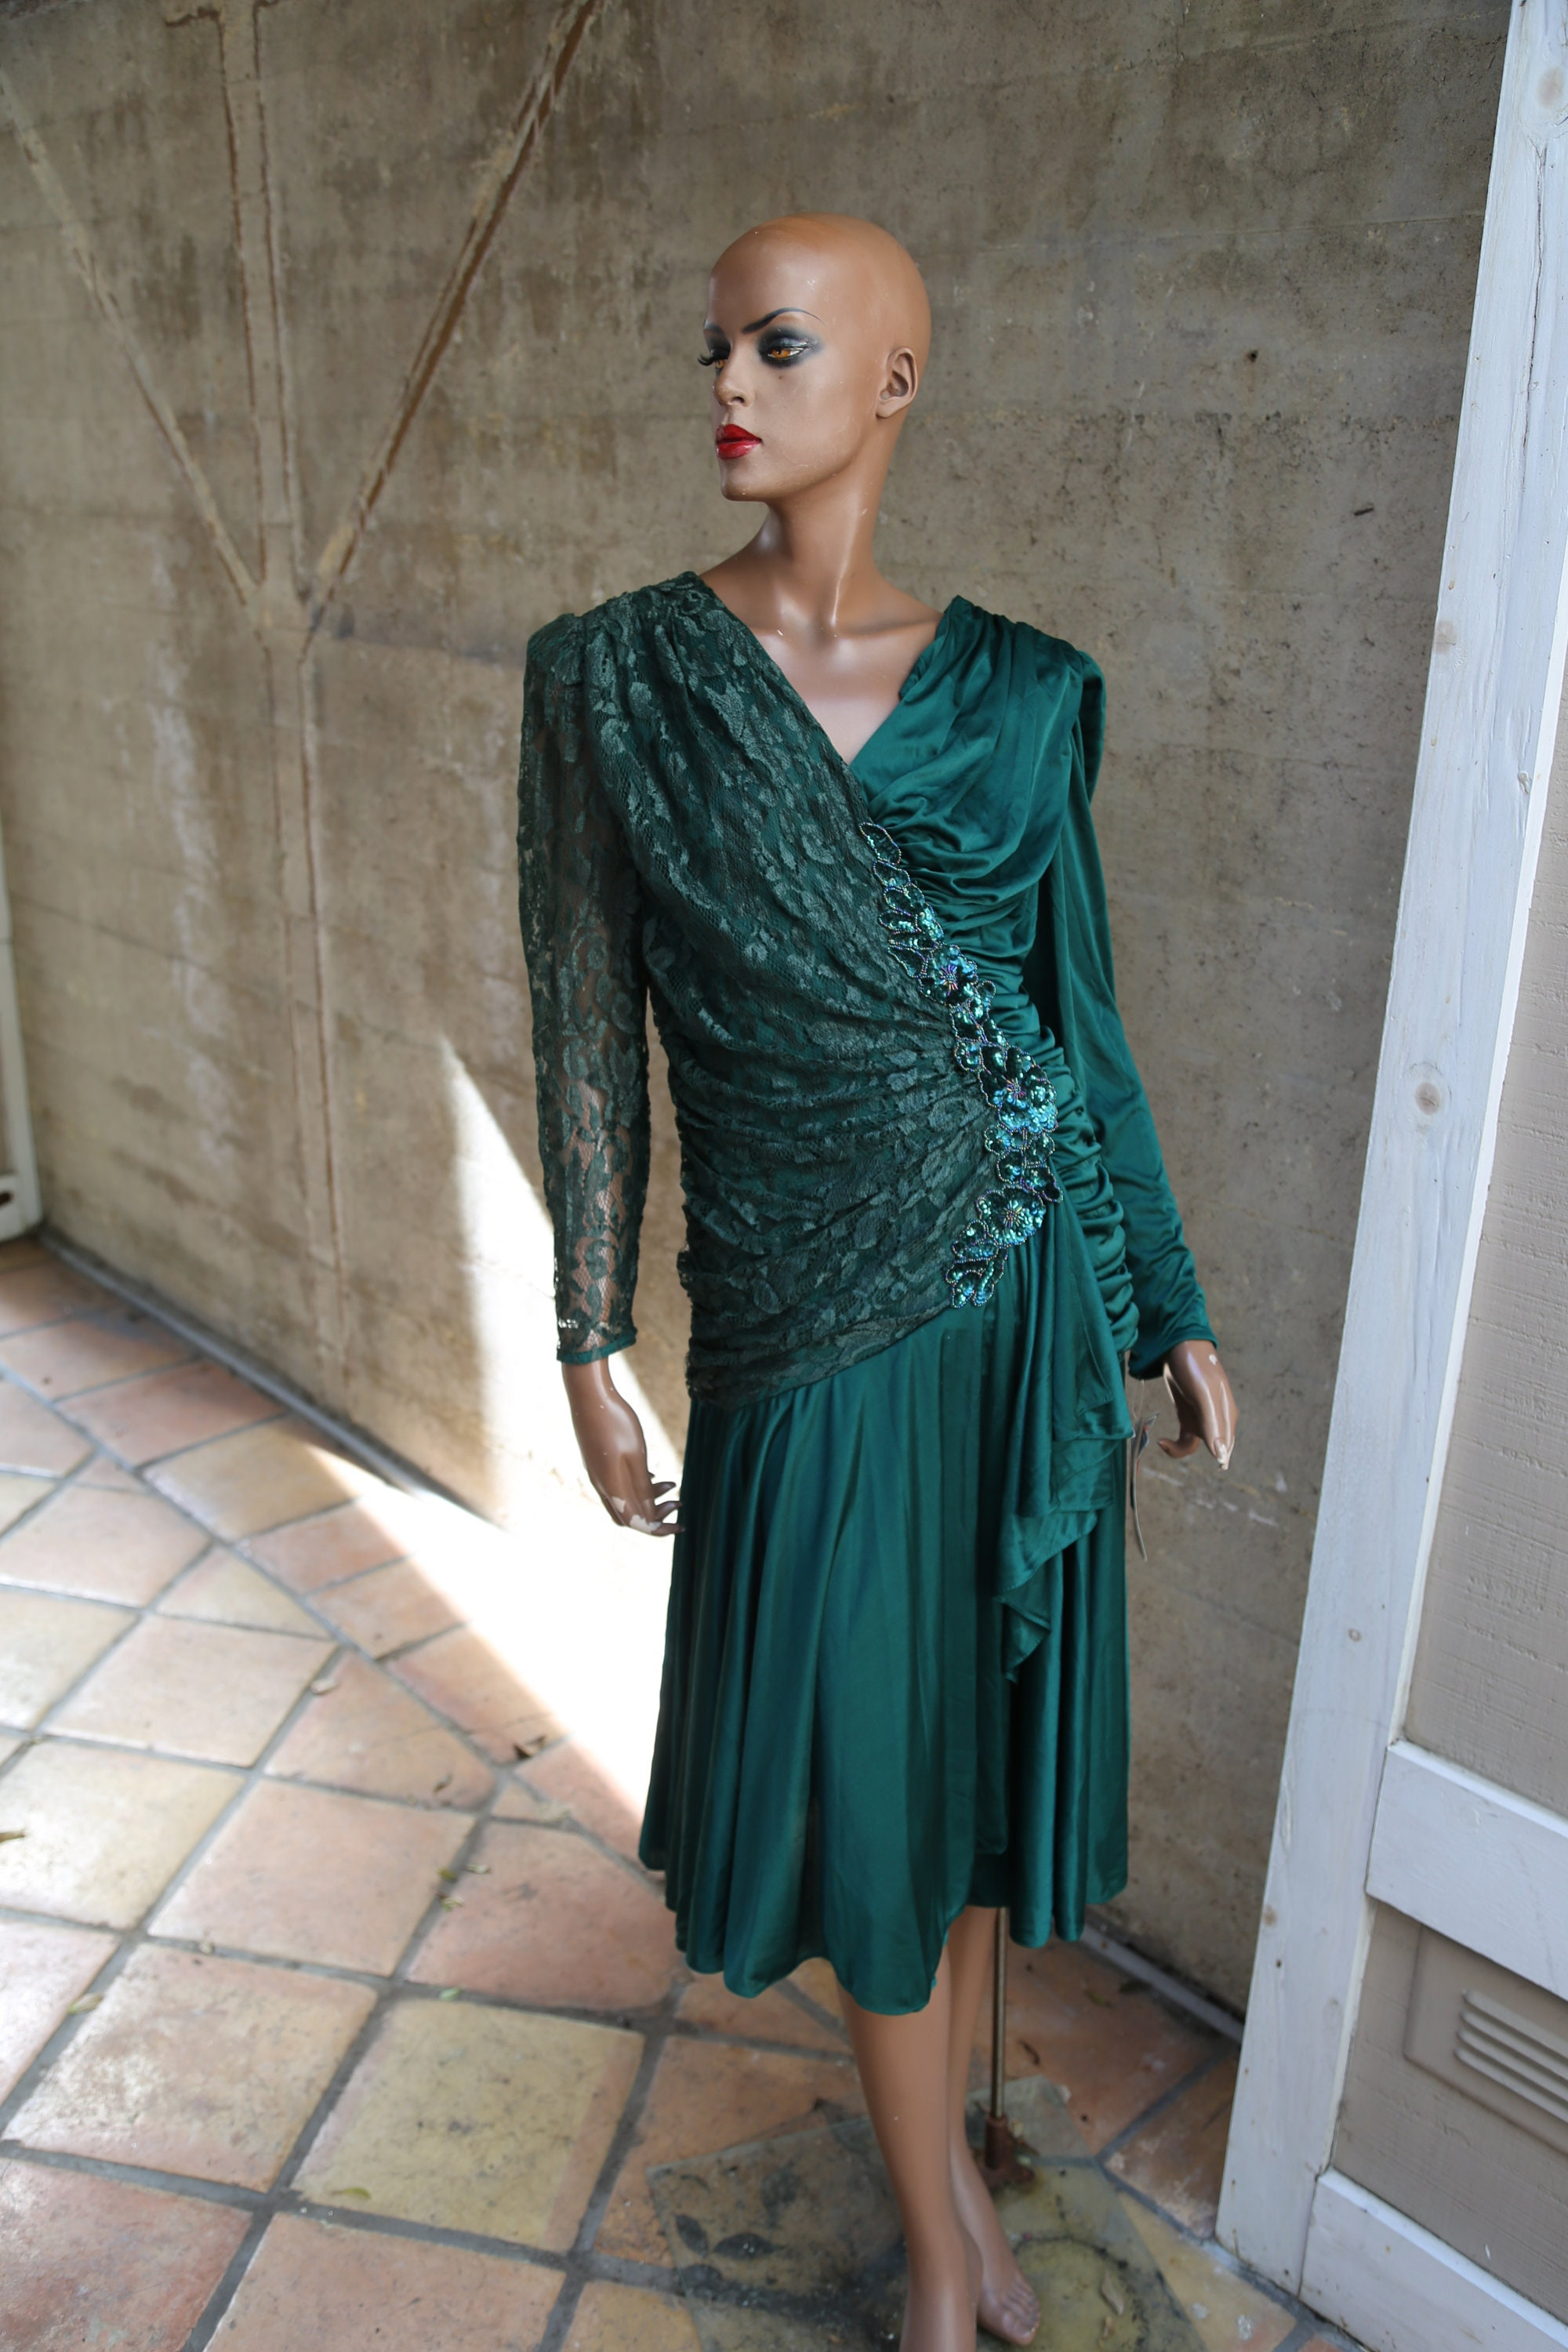 80s Dresses   Casual to Party Dresses 1980S Lace Beaded Sequin Dress Forest Green Size 78 $28.00 AT vintagedancer.com